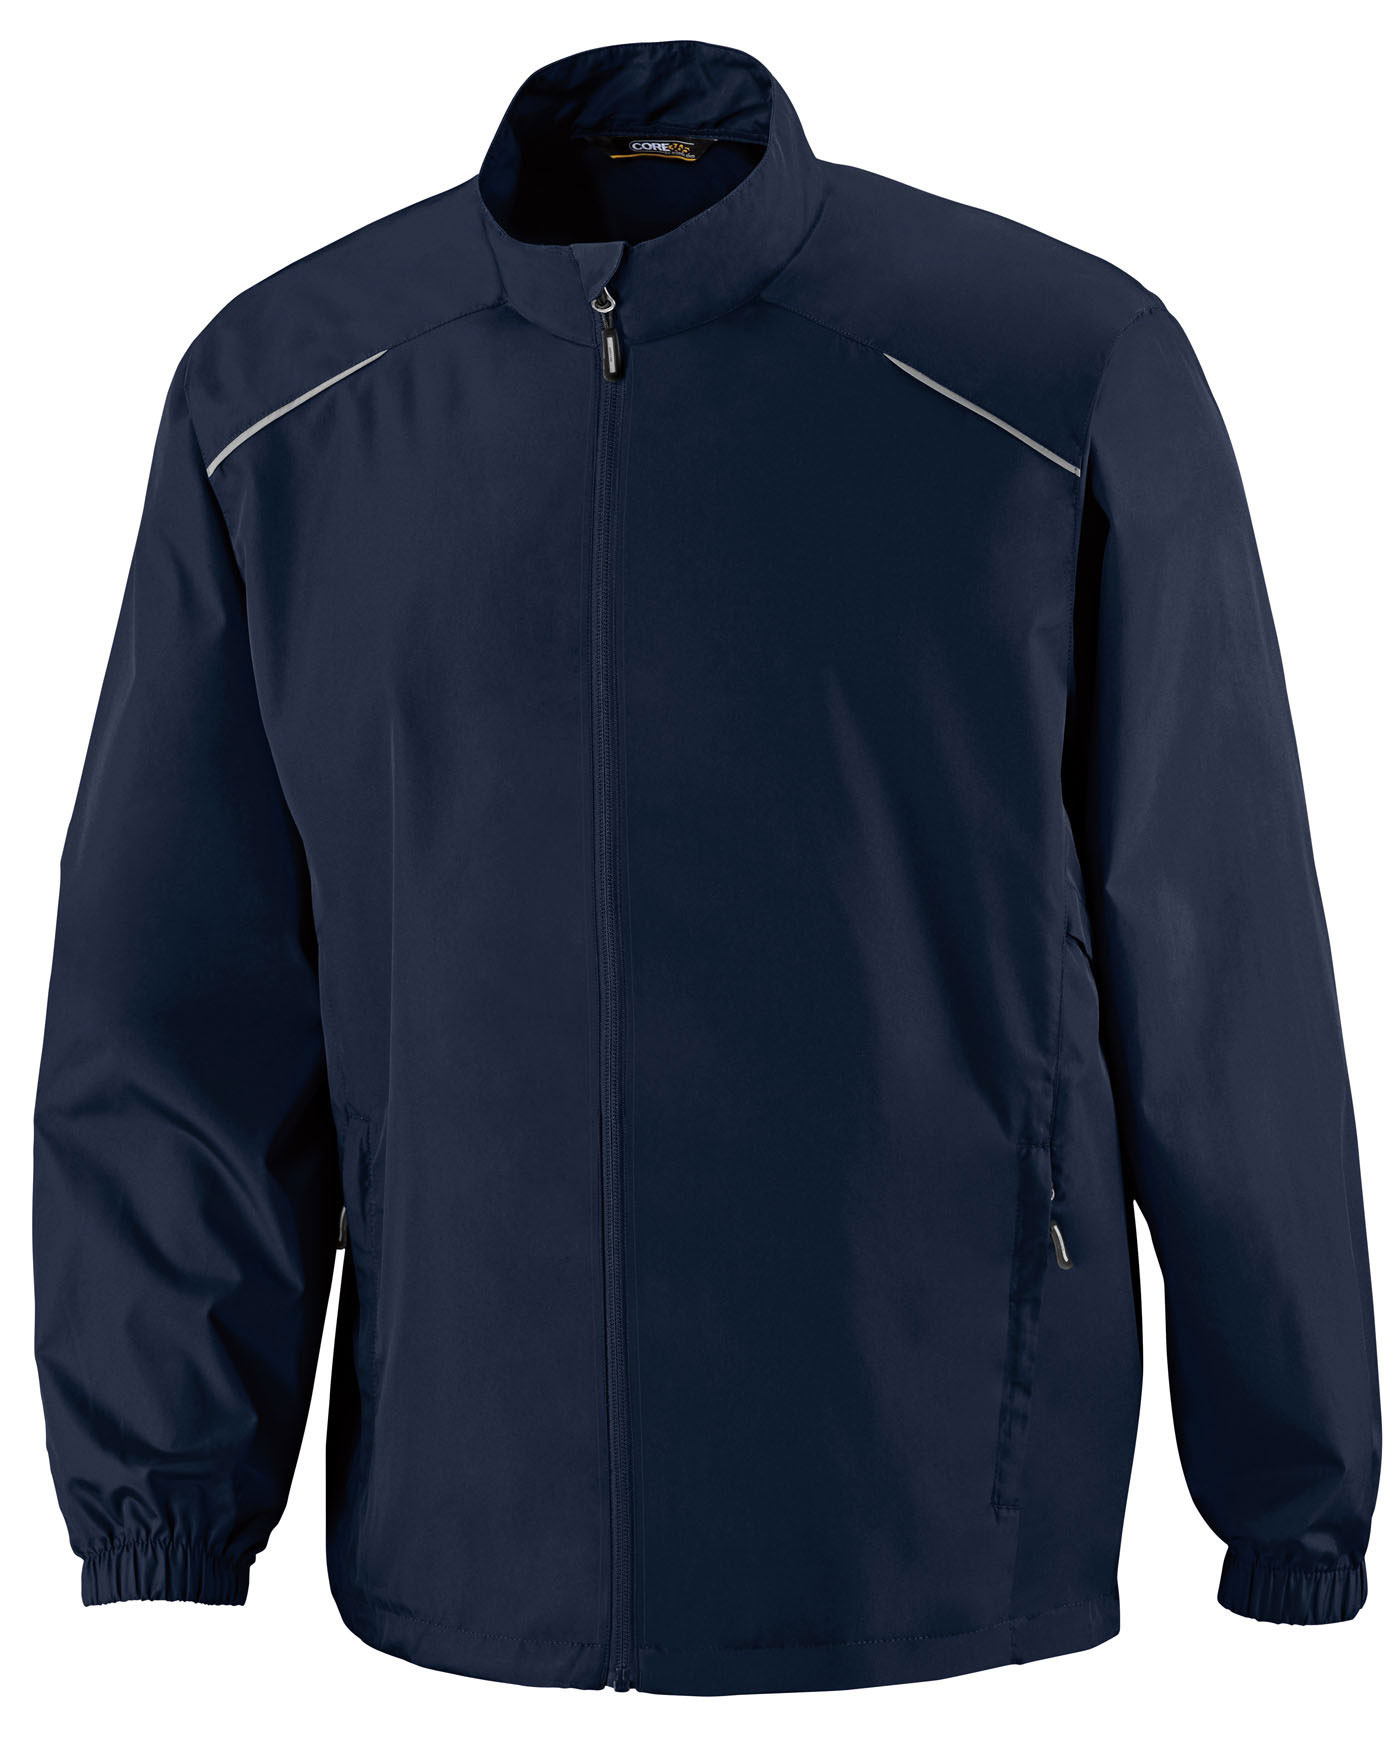 Ash City CORE 365™ Mens Motivate Unlined Lightweight Jacket